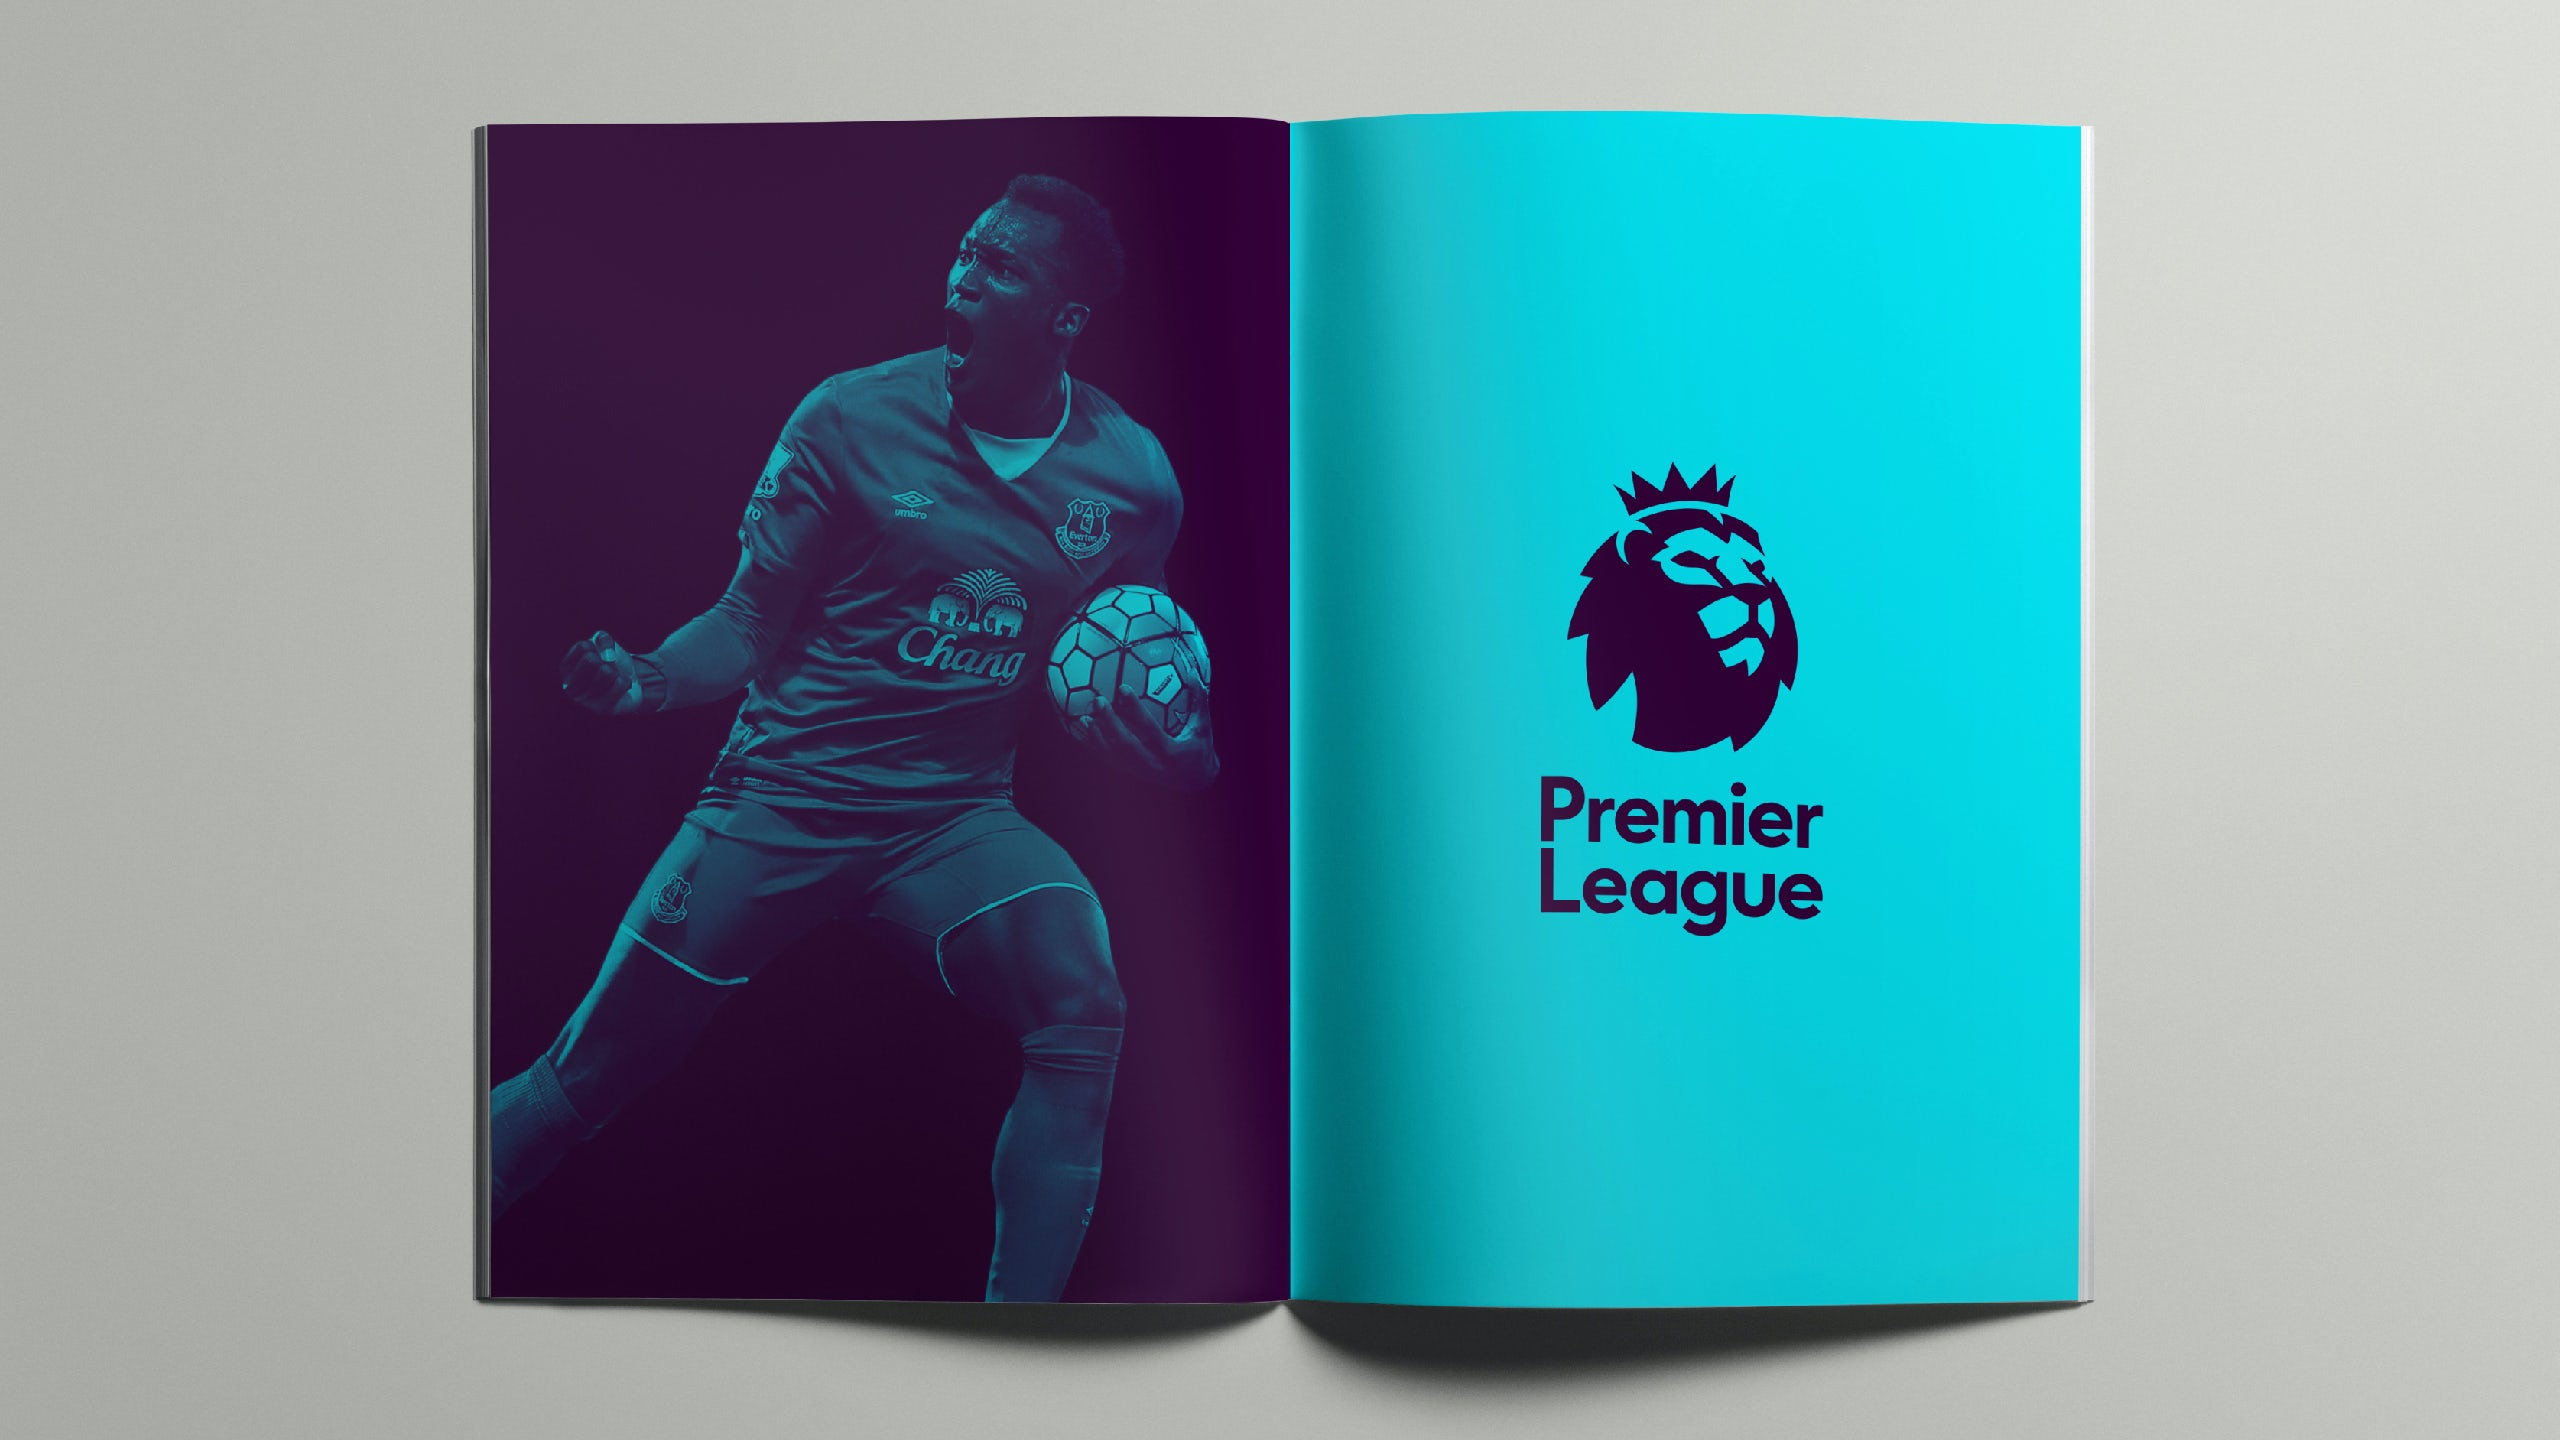 Colour washes have been applied to images of players supplied by clubs or photo libraries. New York agency Collins used a similar approach last year for Spotify, which has to use images of artists supplied by record labels